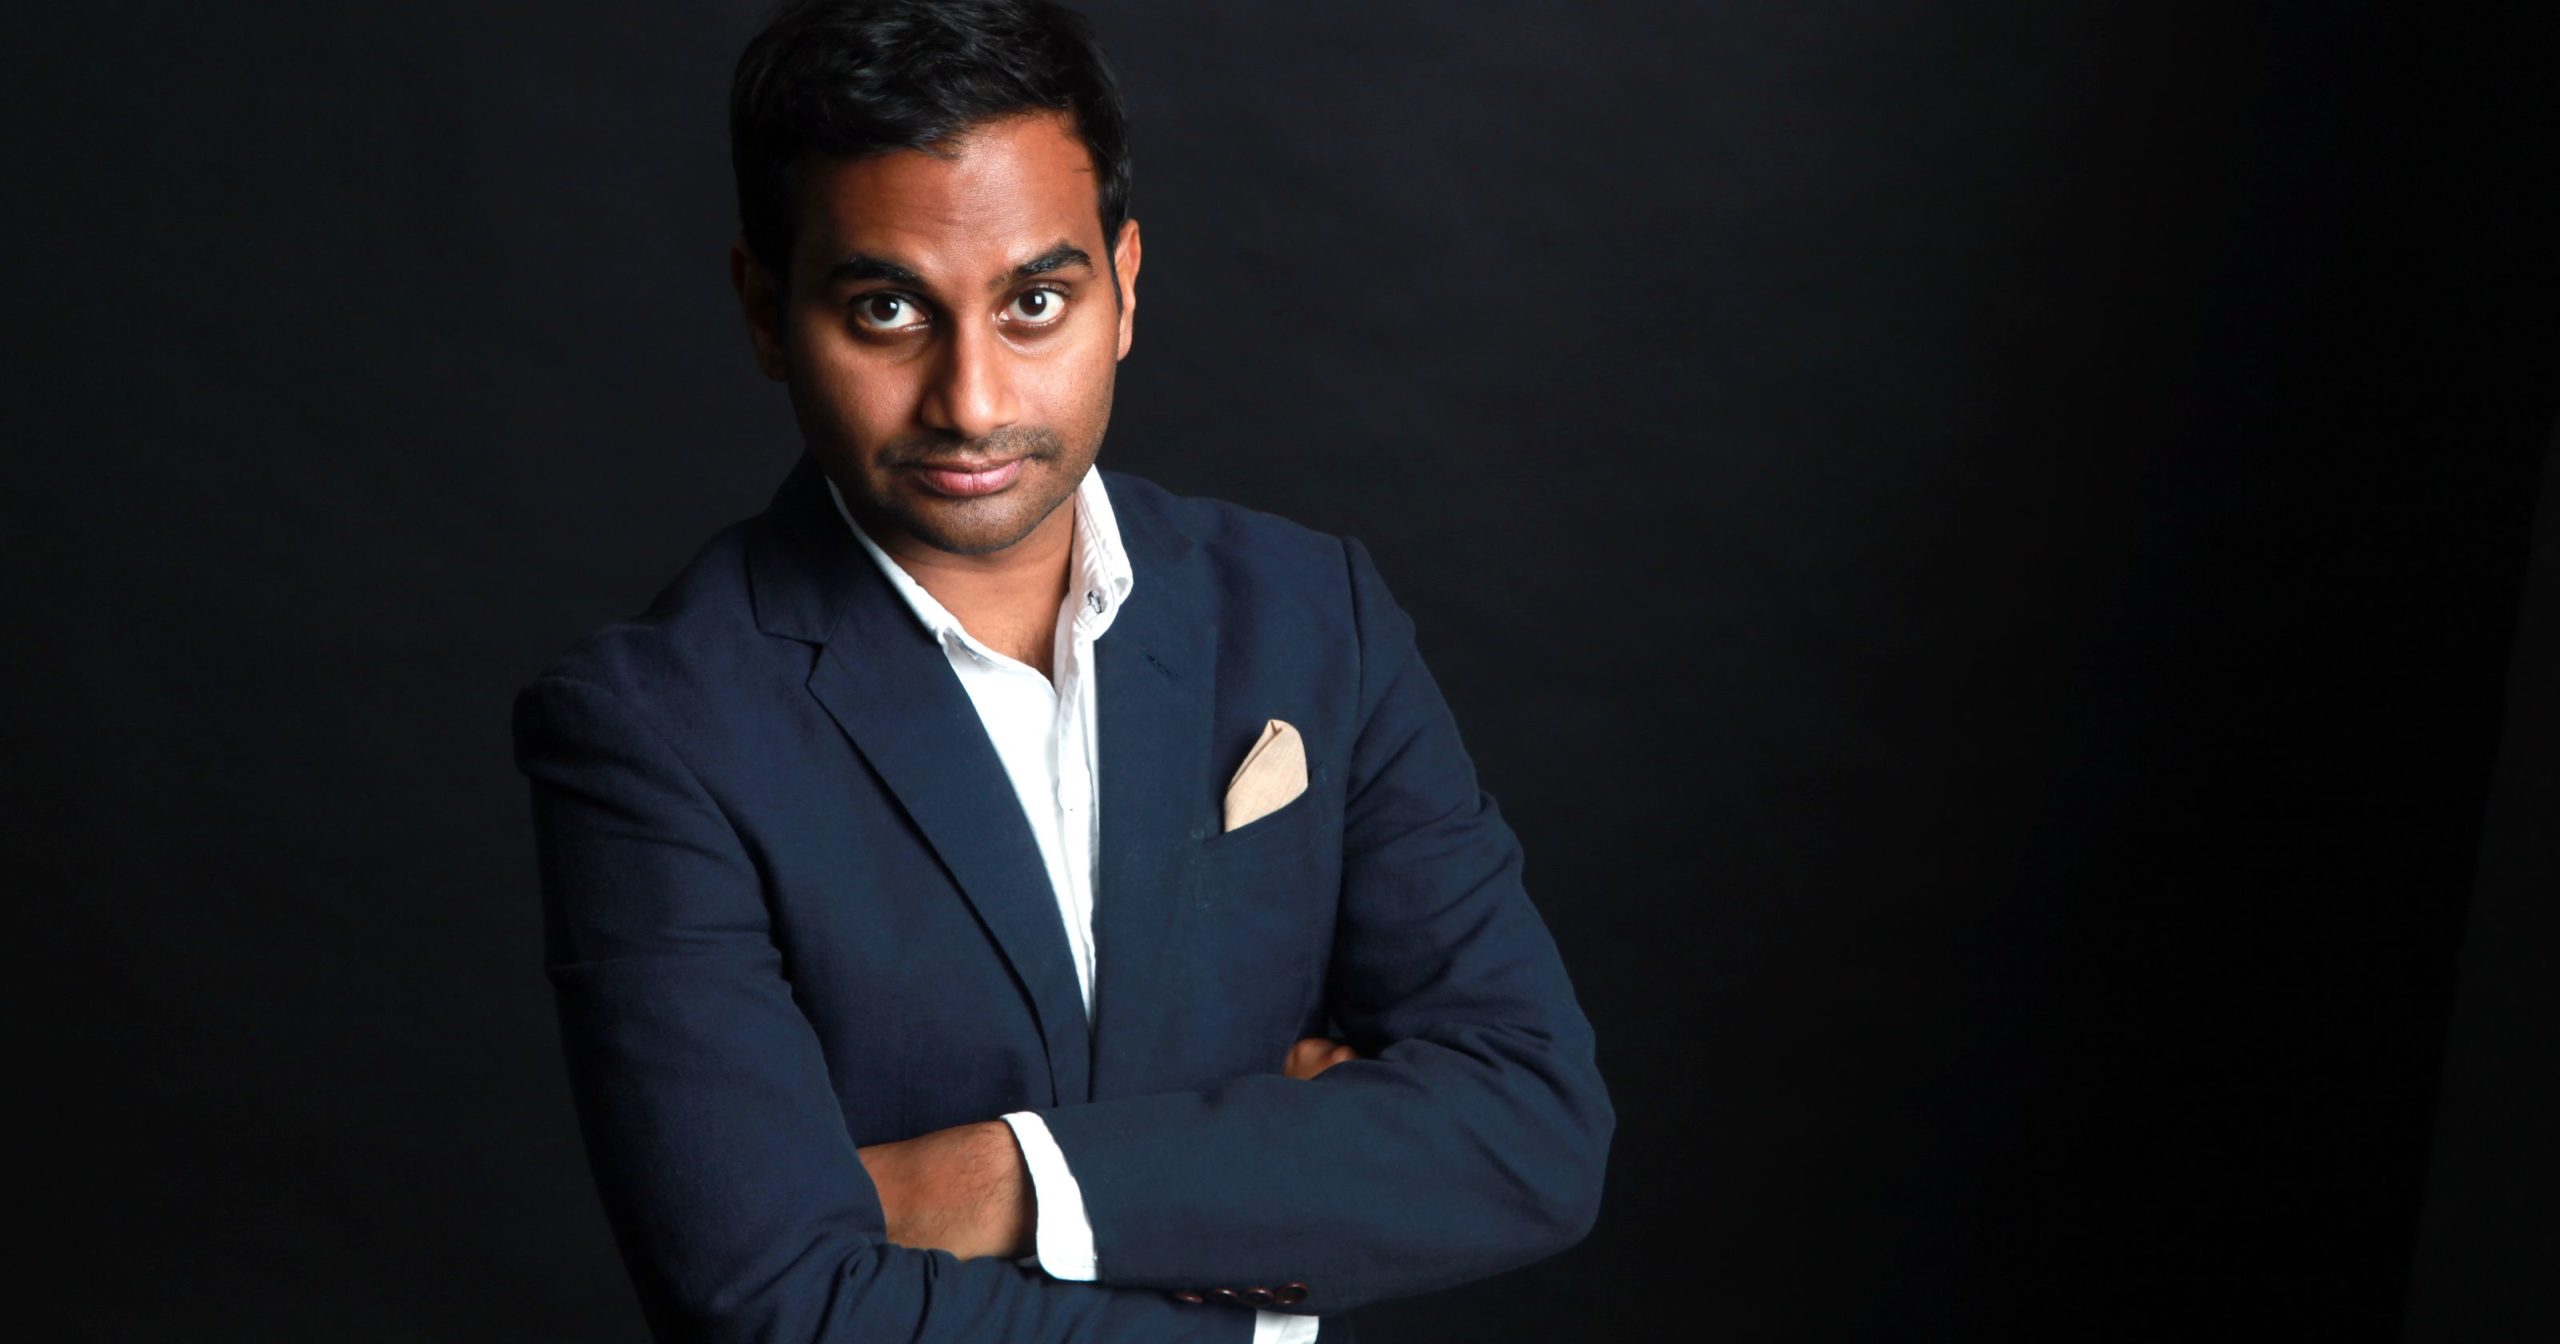 Aziz Ansari Has Some Advice for You